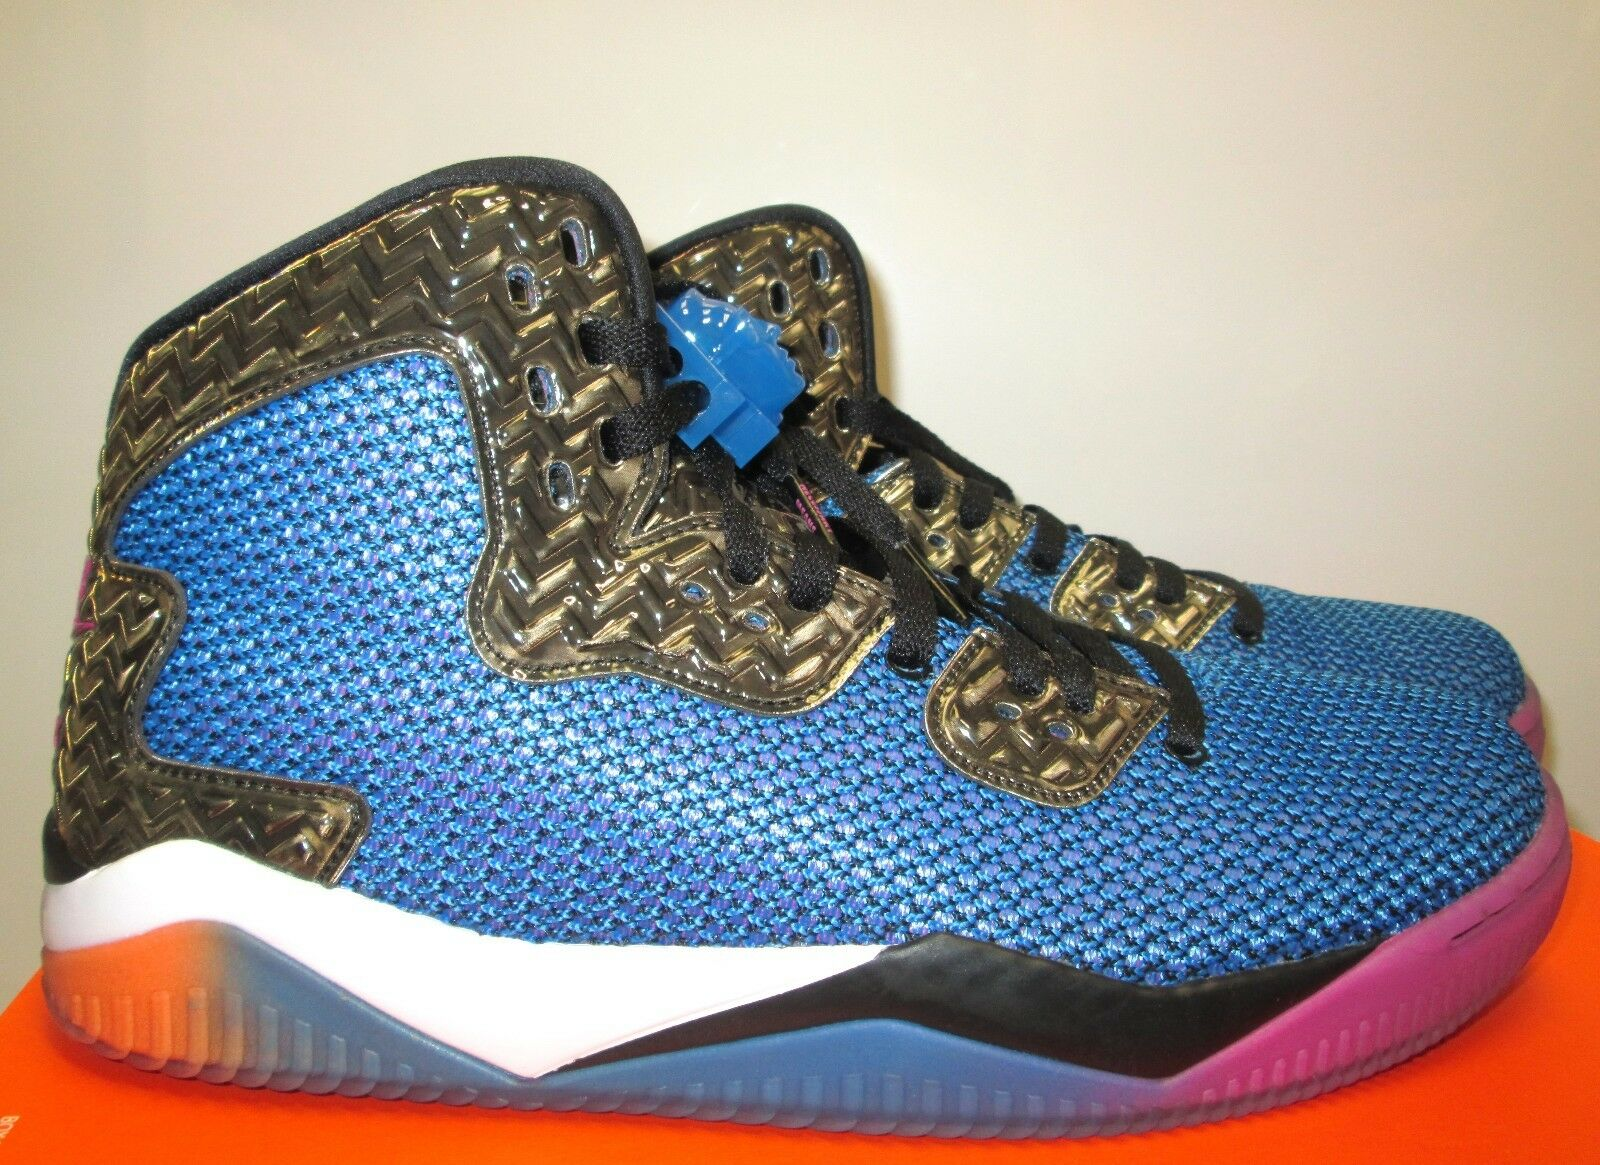 Nike Air Jordan Spike Forty men's Basketball sneaker shoes Price reduction Special limited time